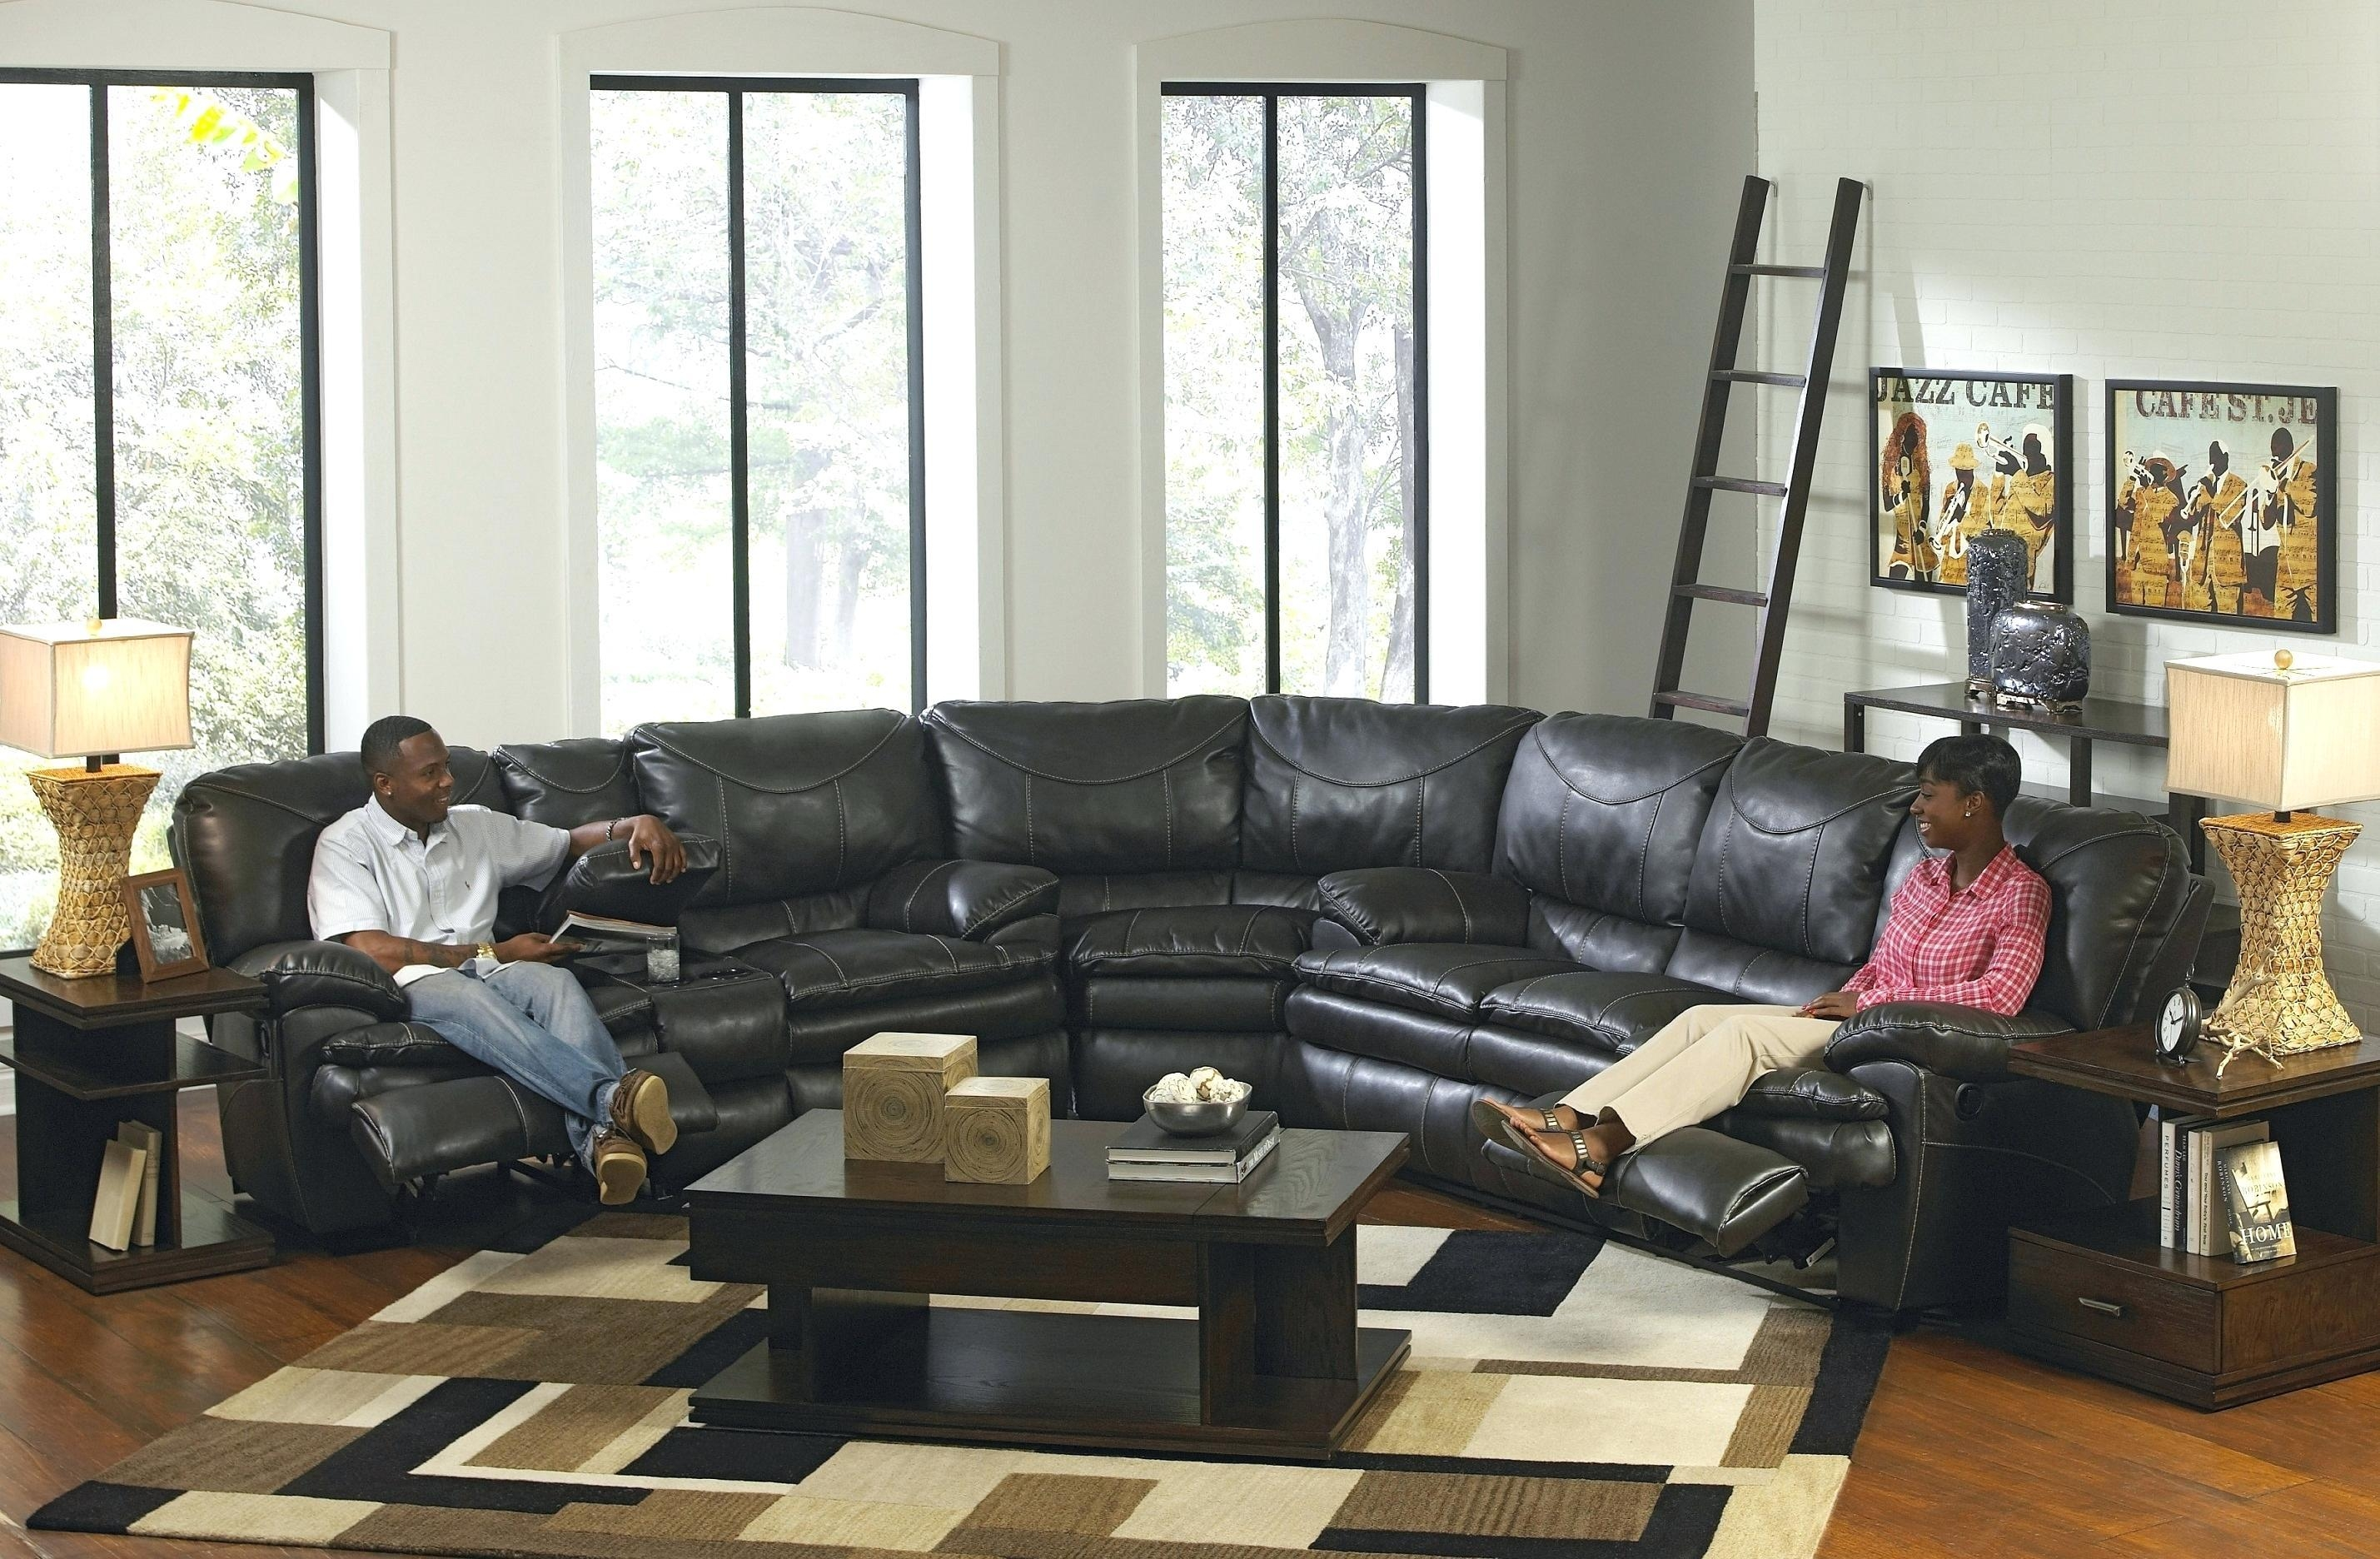 3 Seater Recliner Leather Sofa Gallery Of Stunning Sectional With within Berkline Sofa Recliner